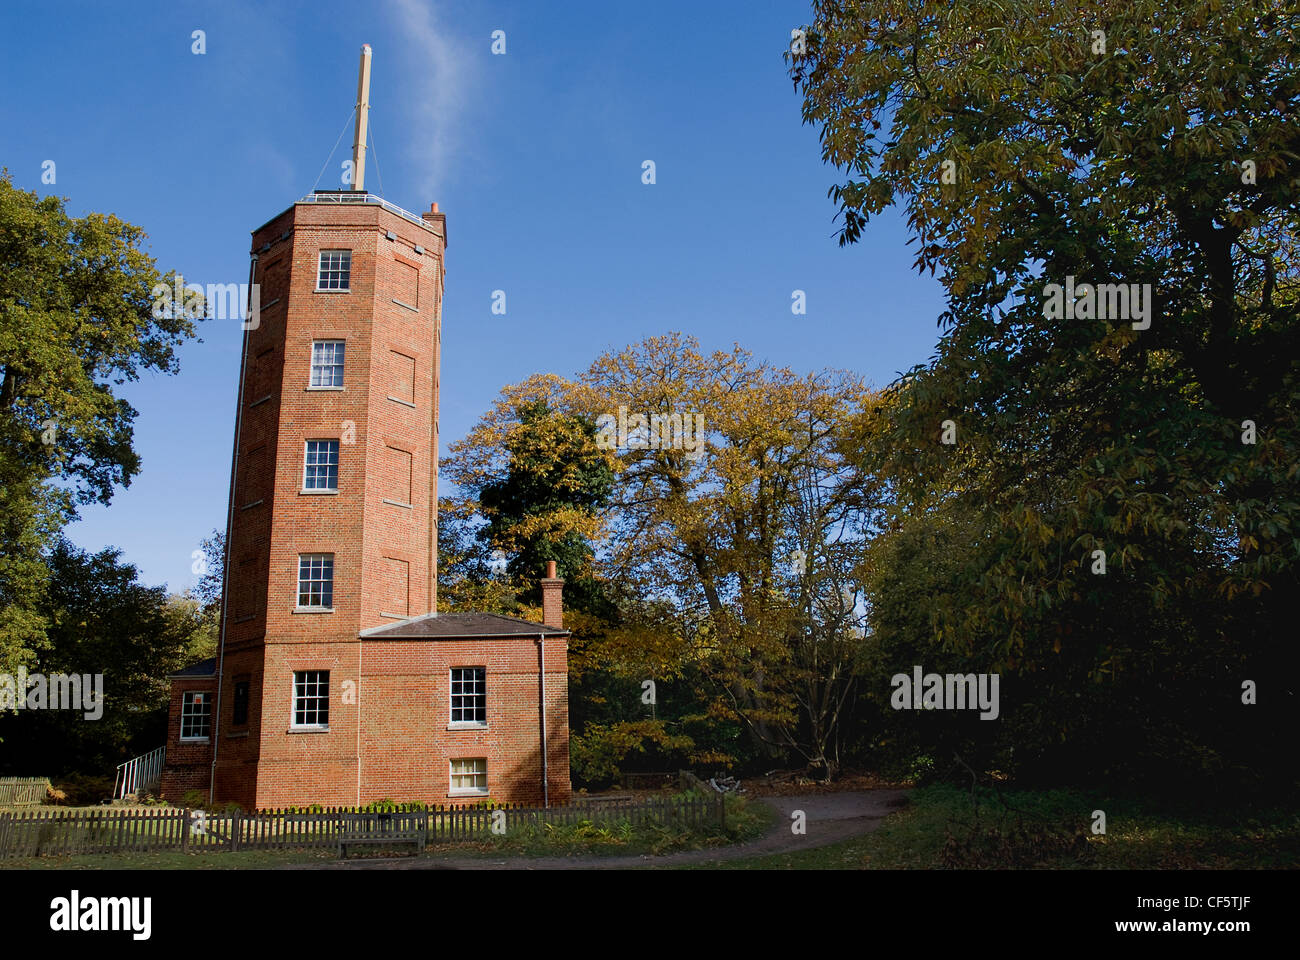 Semaphore Tower at the top of Chatley Heath near Cobham. The tower was originally built as a replacement for the Stock Photo